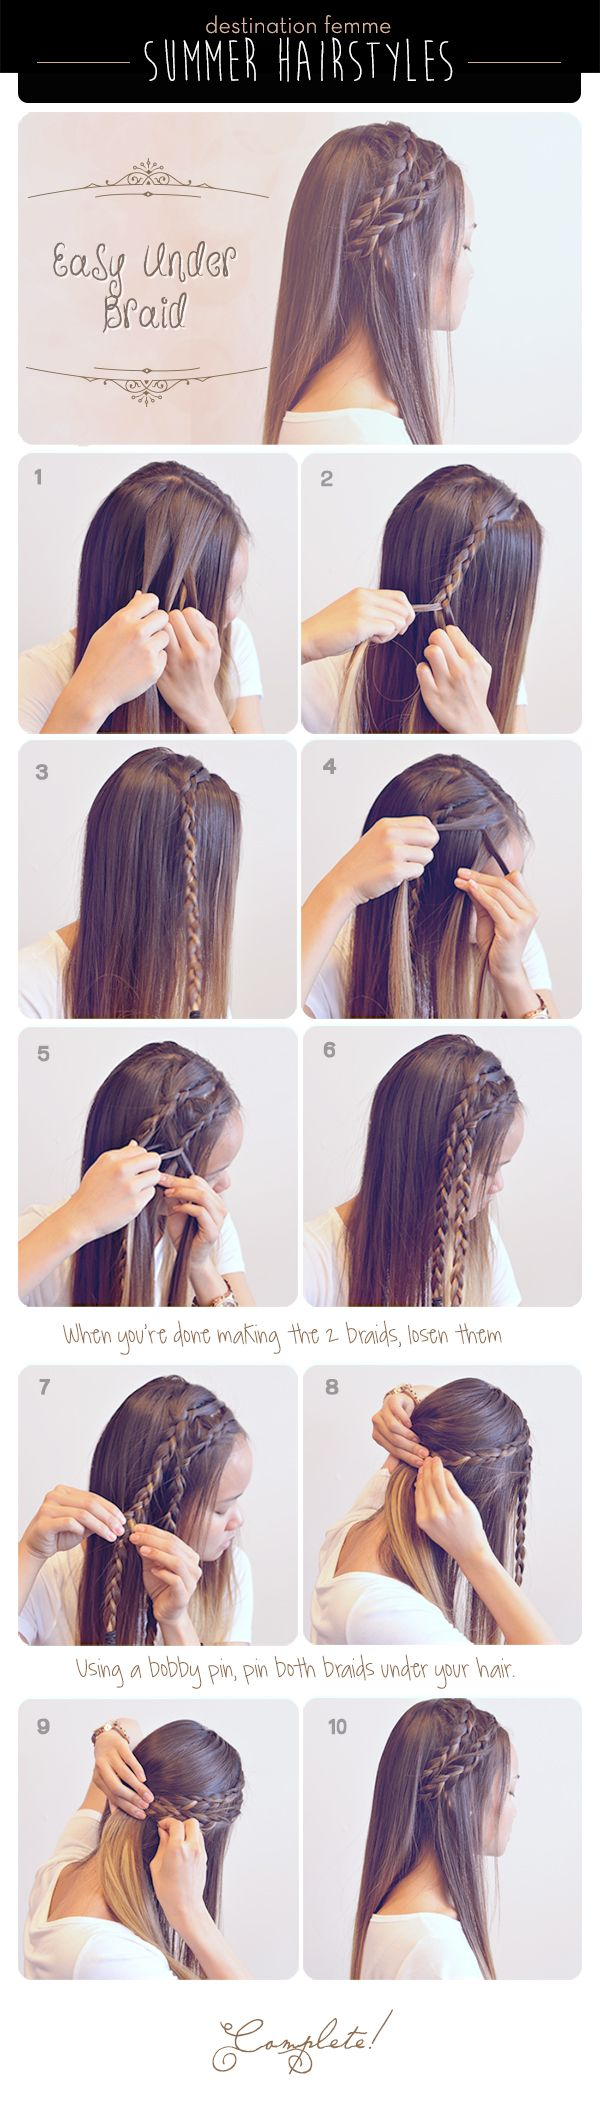 Braids on braids three must have hairstyles for the summer beauty